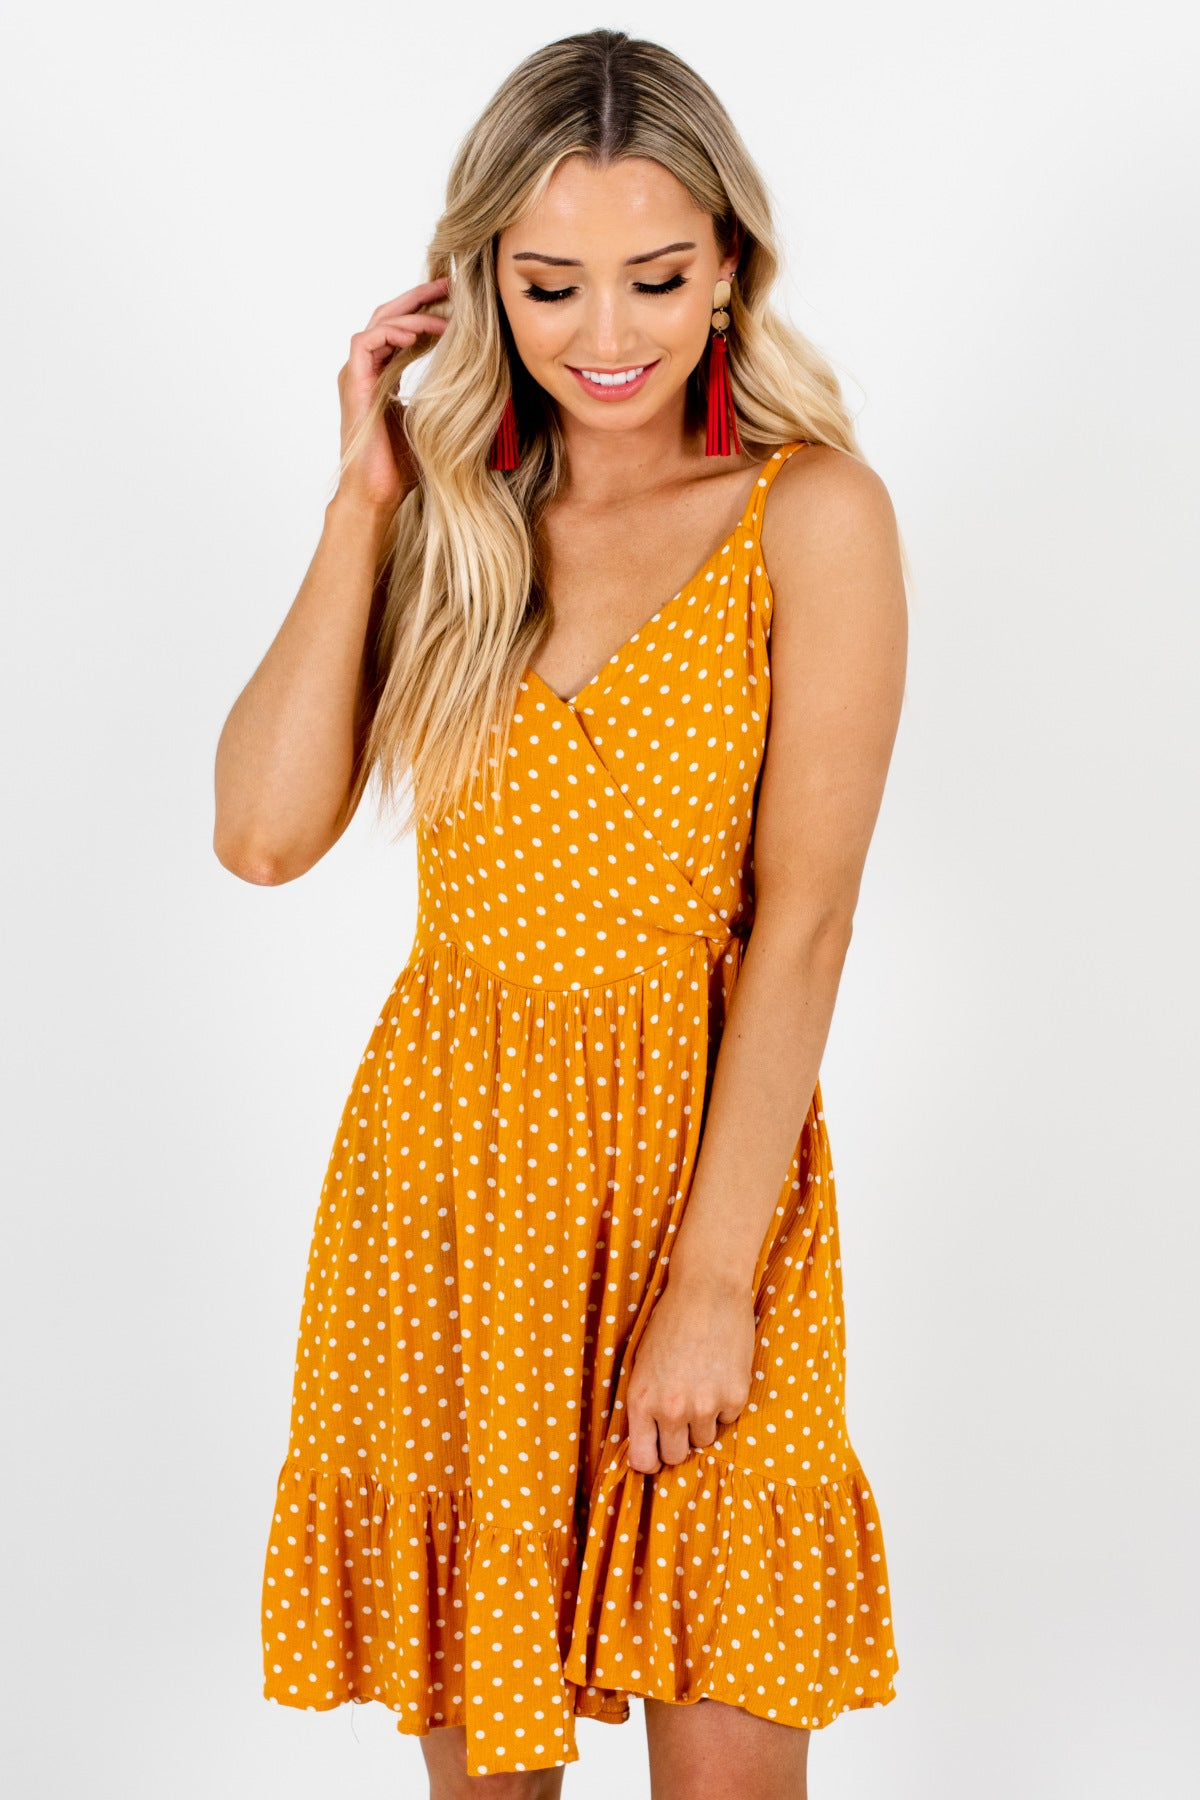 Mustard Orange Polka Dot Mini Dresses Affordable Online Boutique